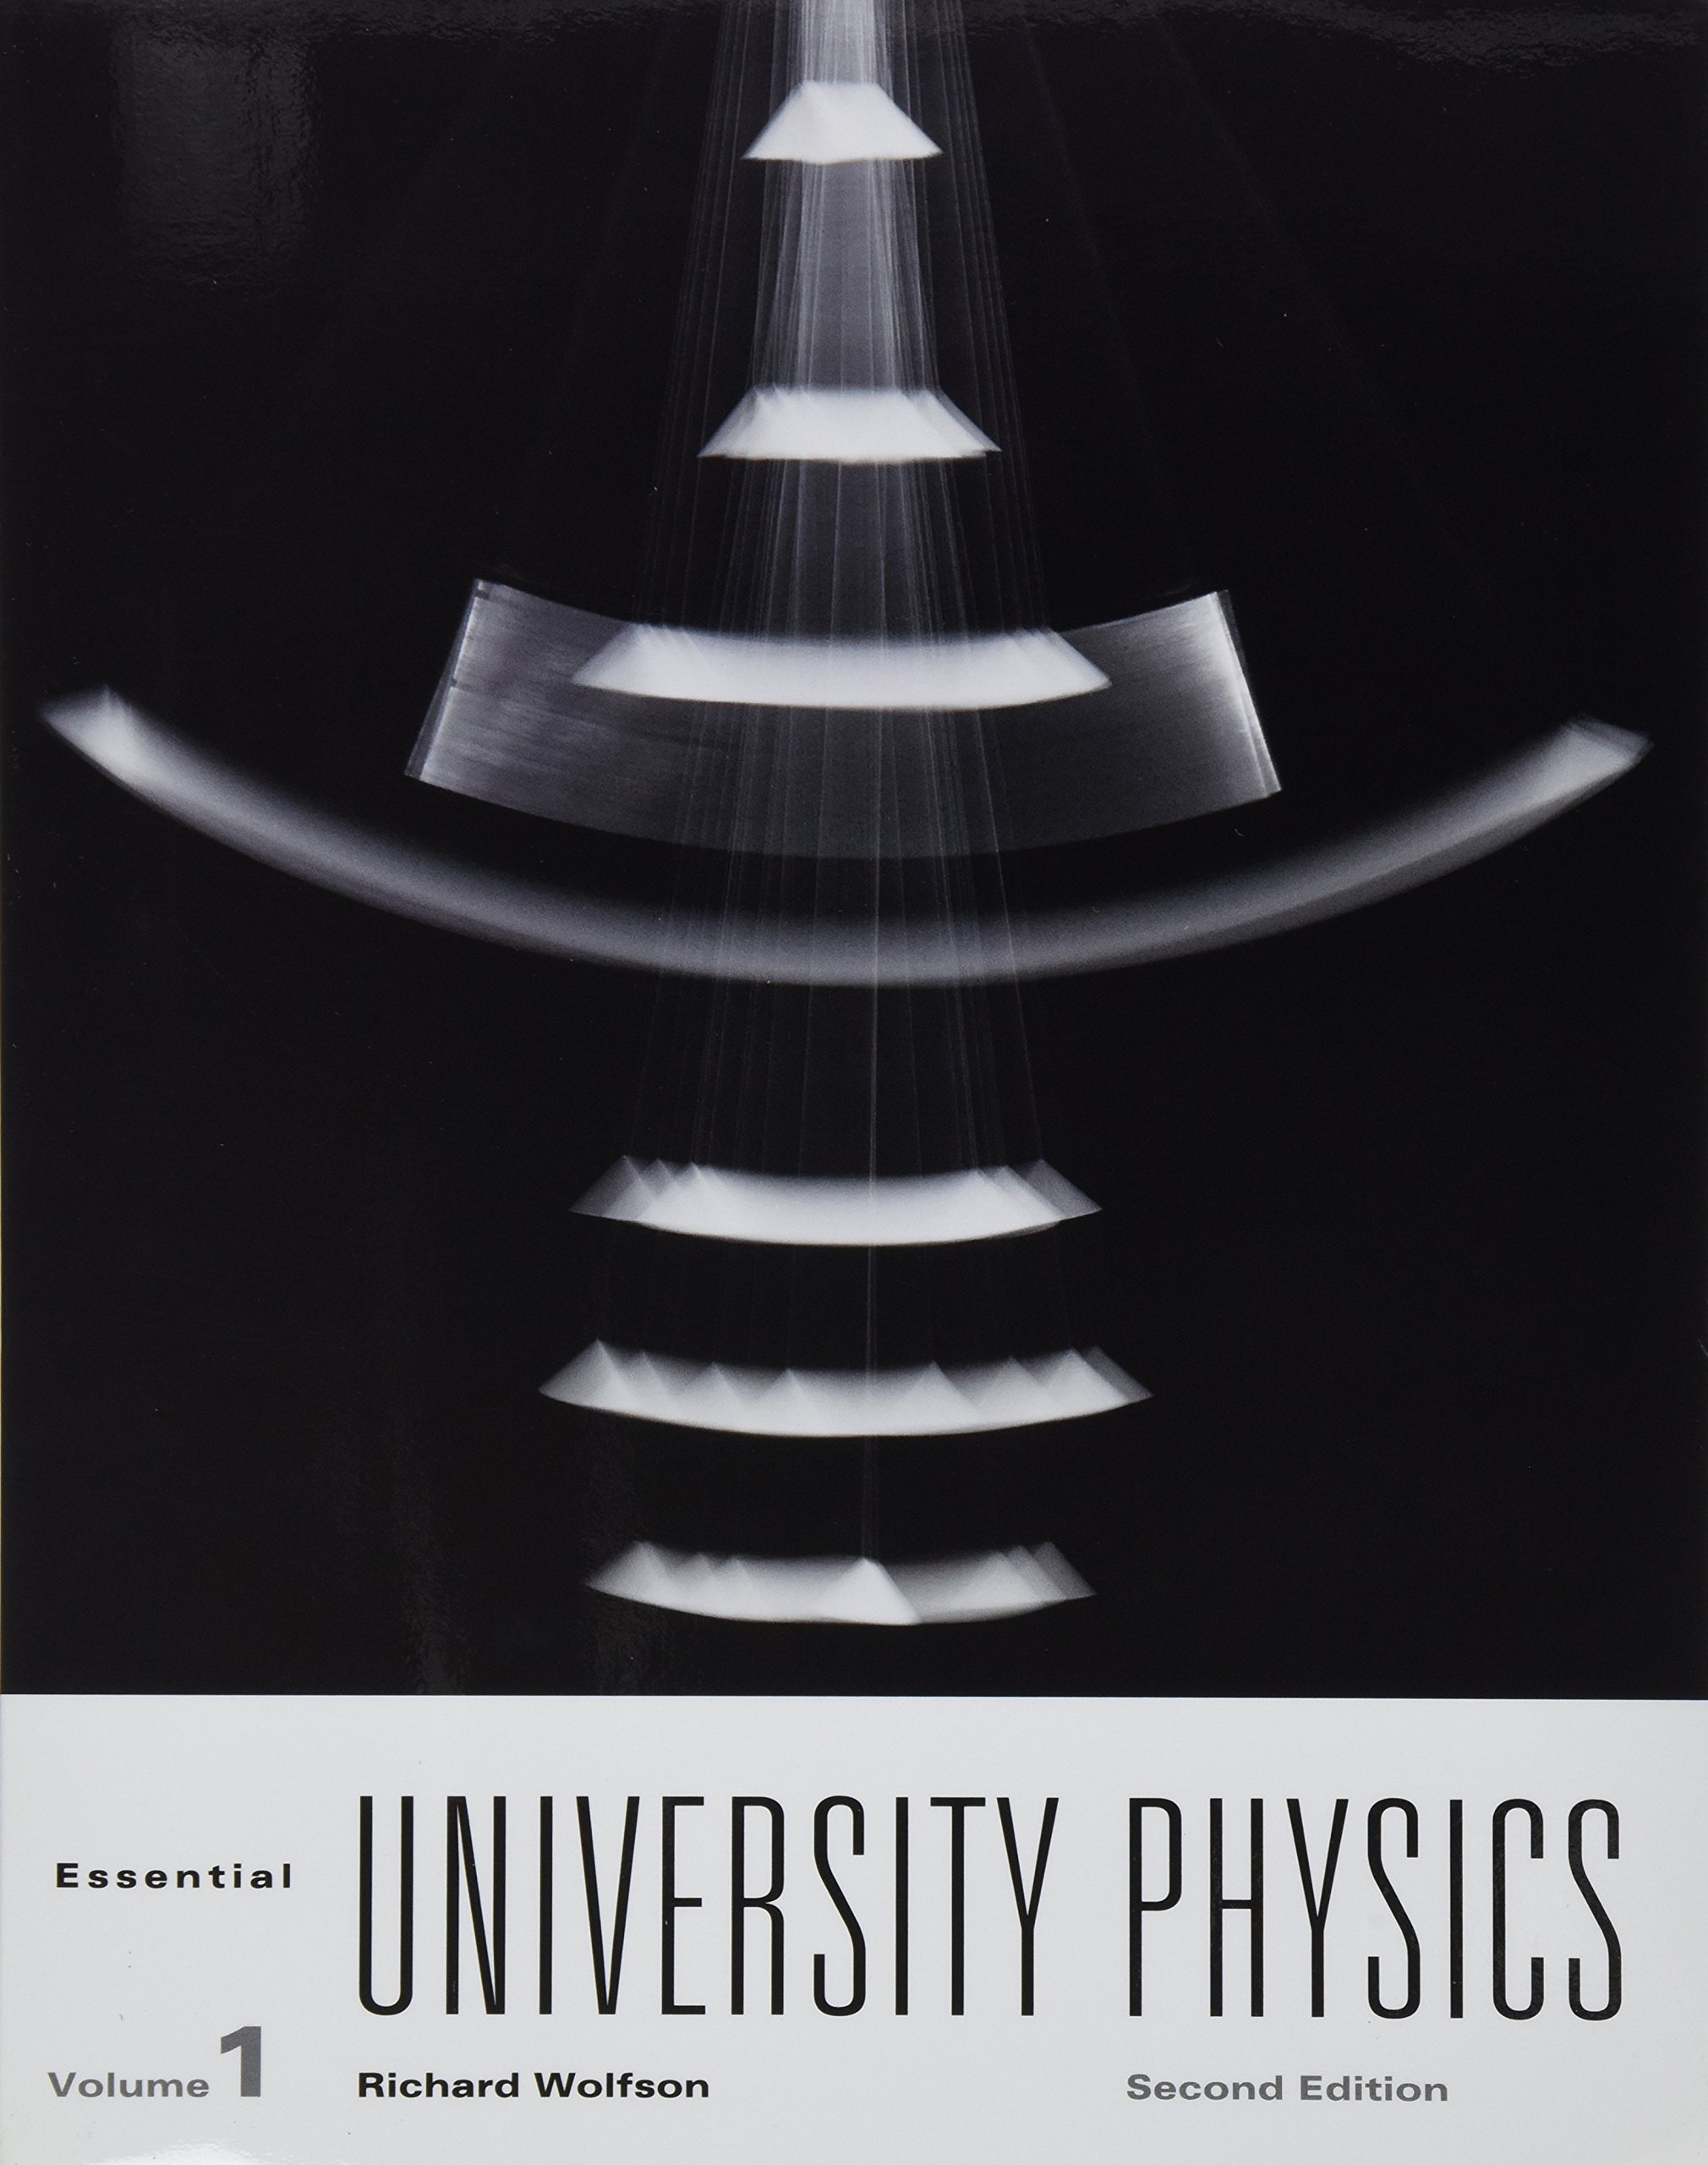 Essential University Physics: Richard Wolfson: 9780321435644: Amazon.com:  Books